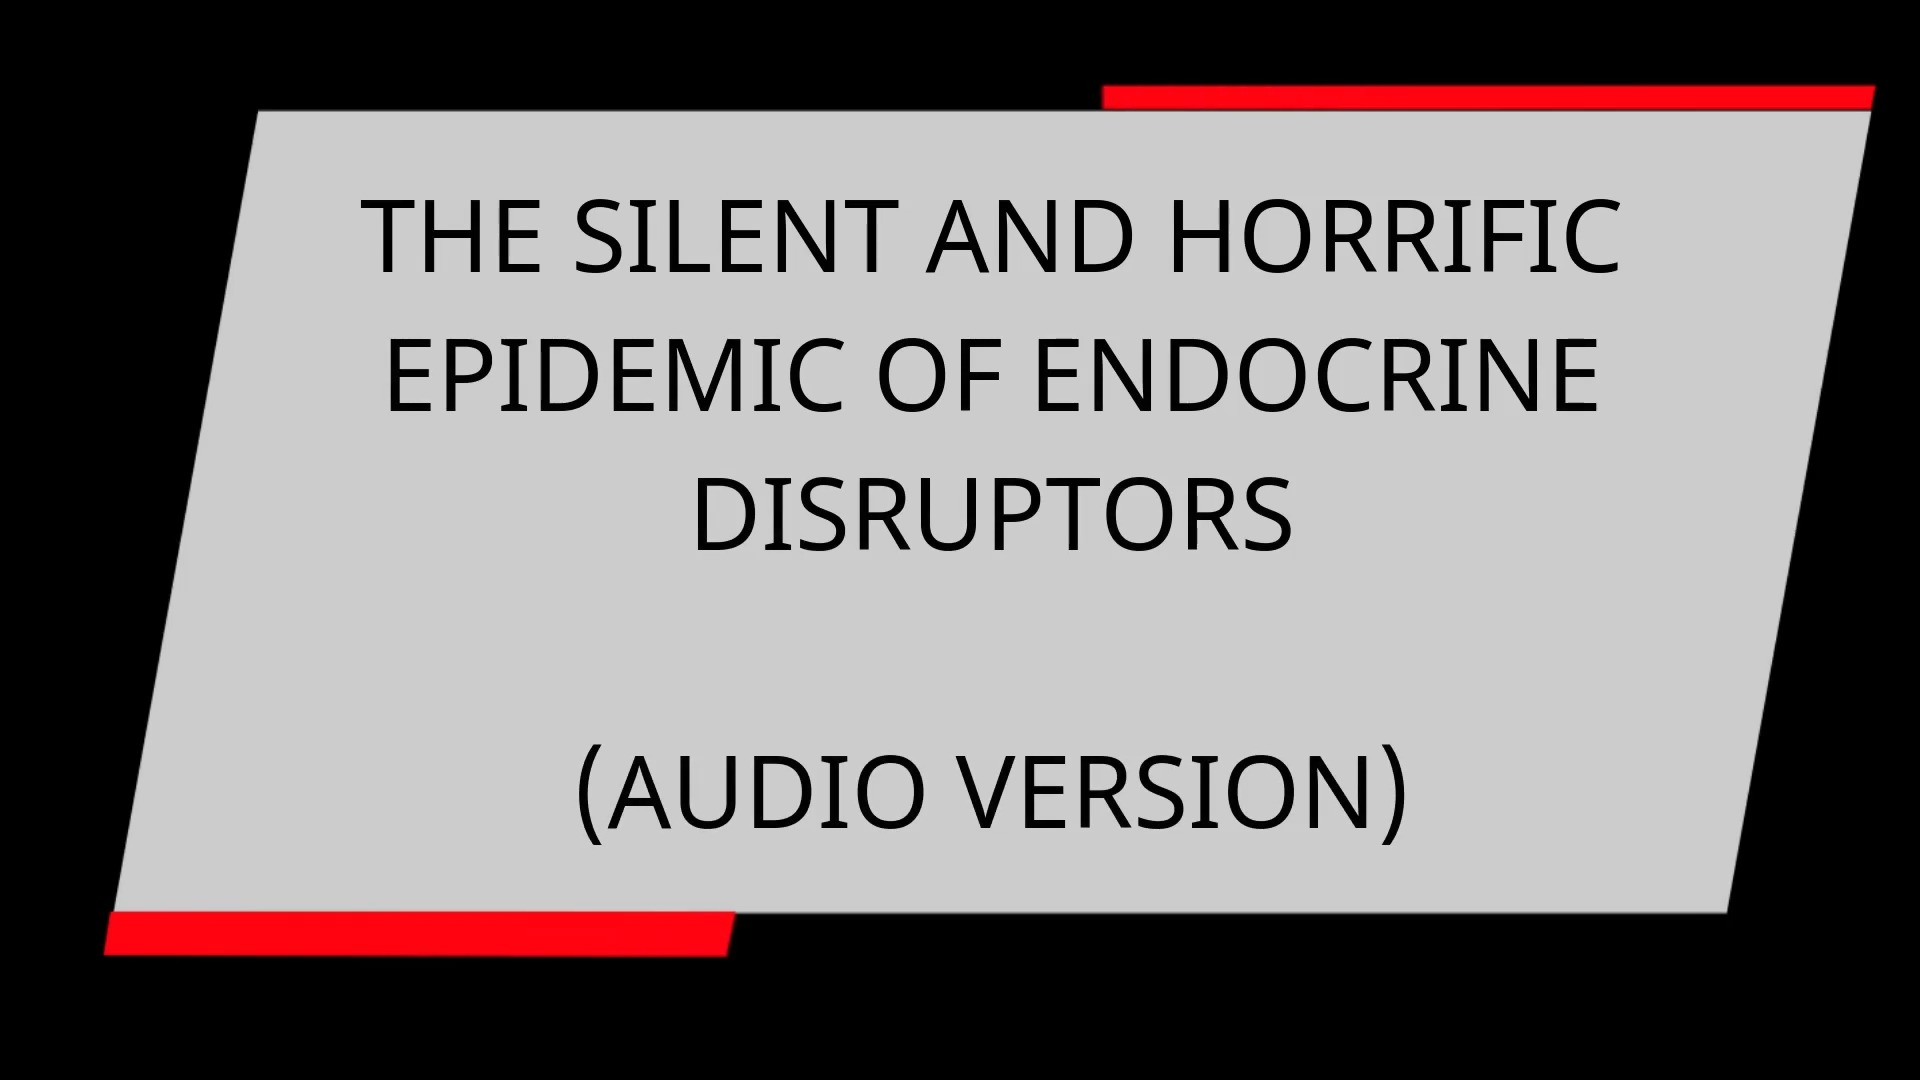 THE SILENT AND HORRIFIC EPIDEMIC OF ENDOCRINE DISRUPTORS